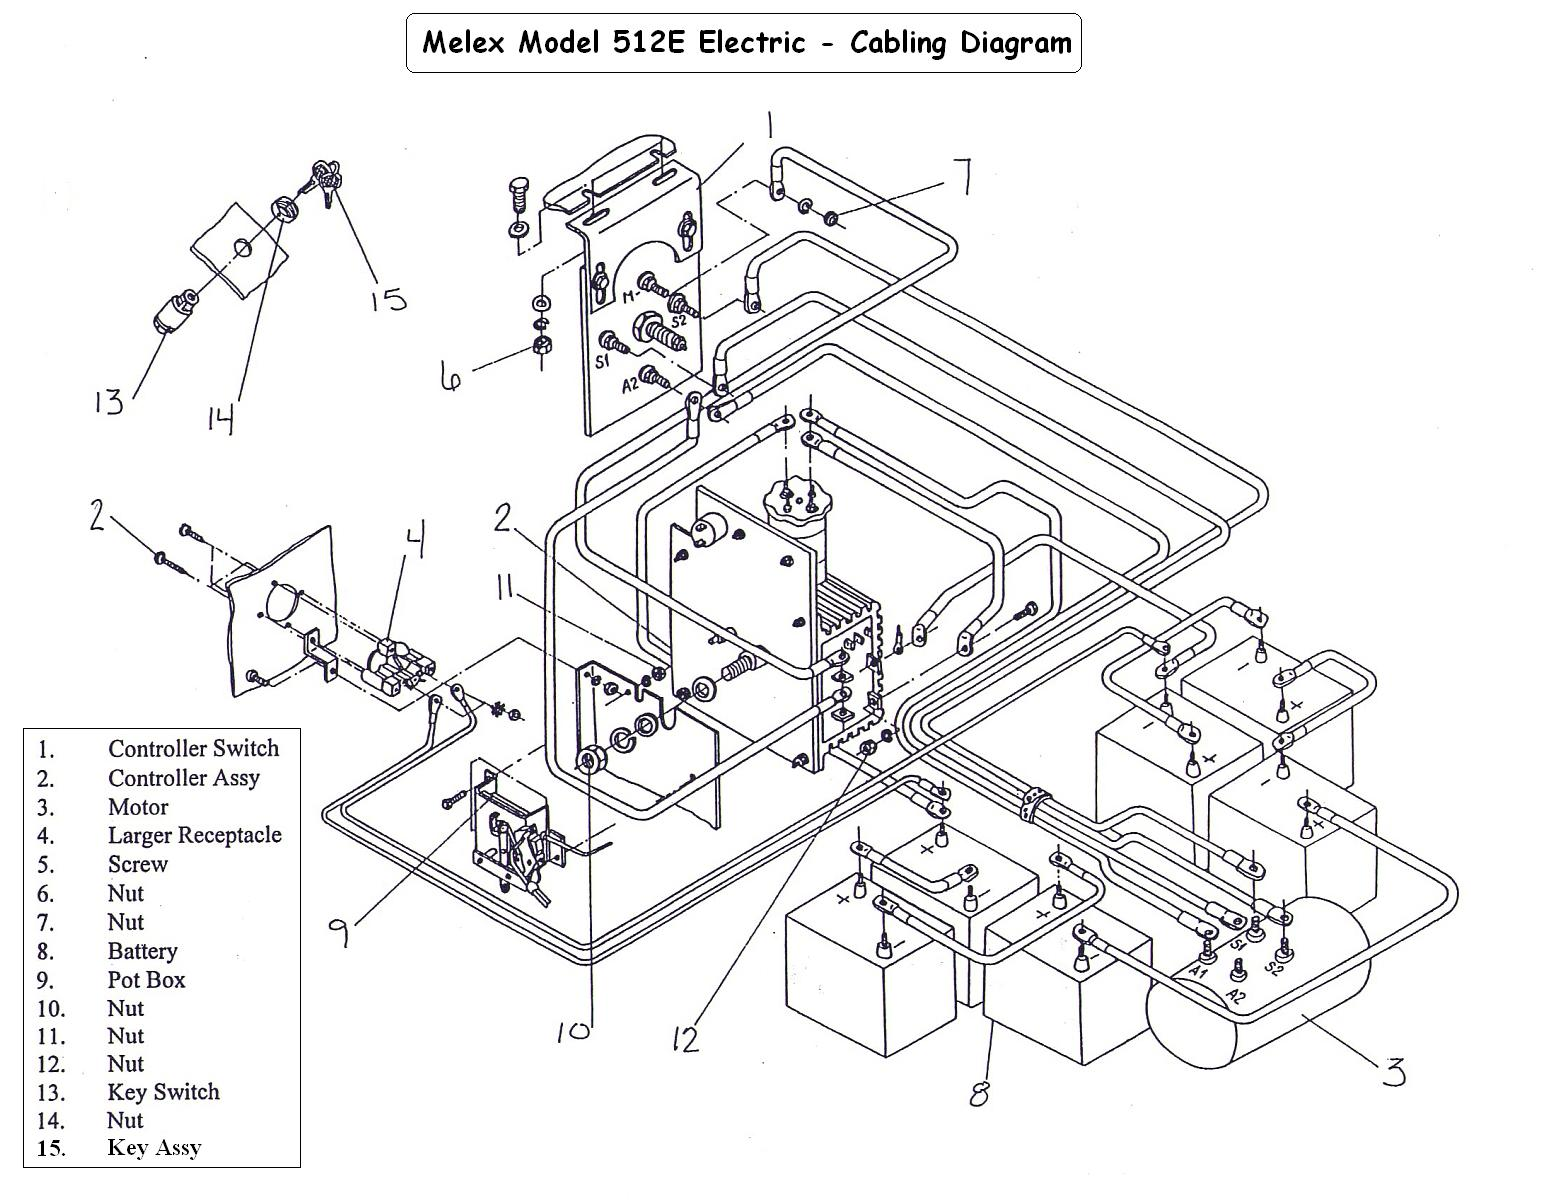 melex 512 wiring diagram